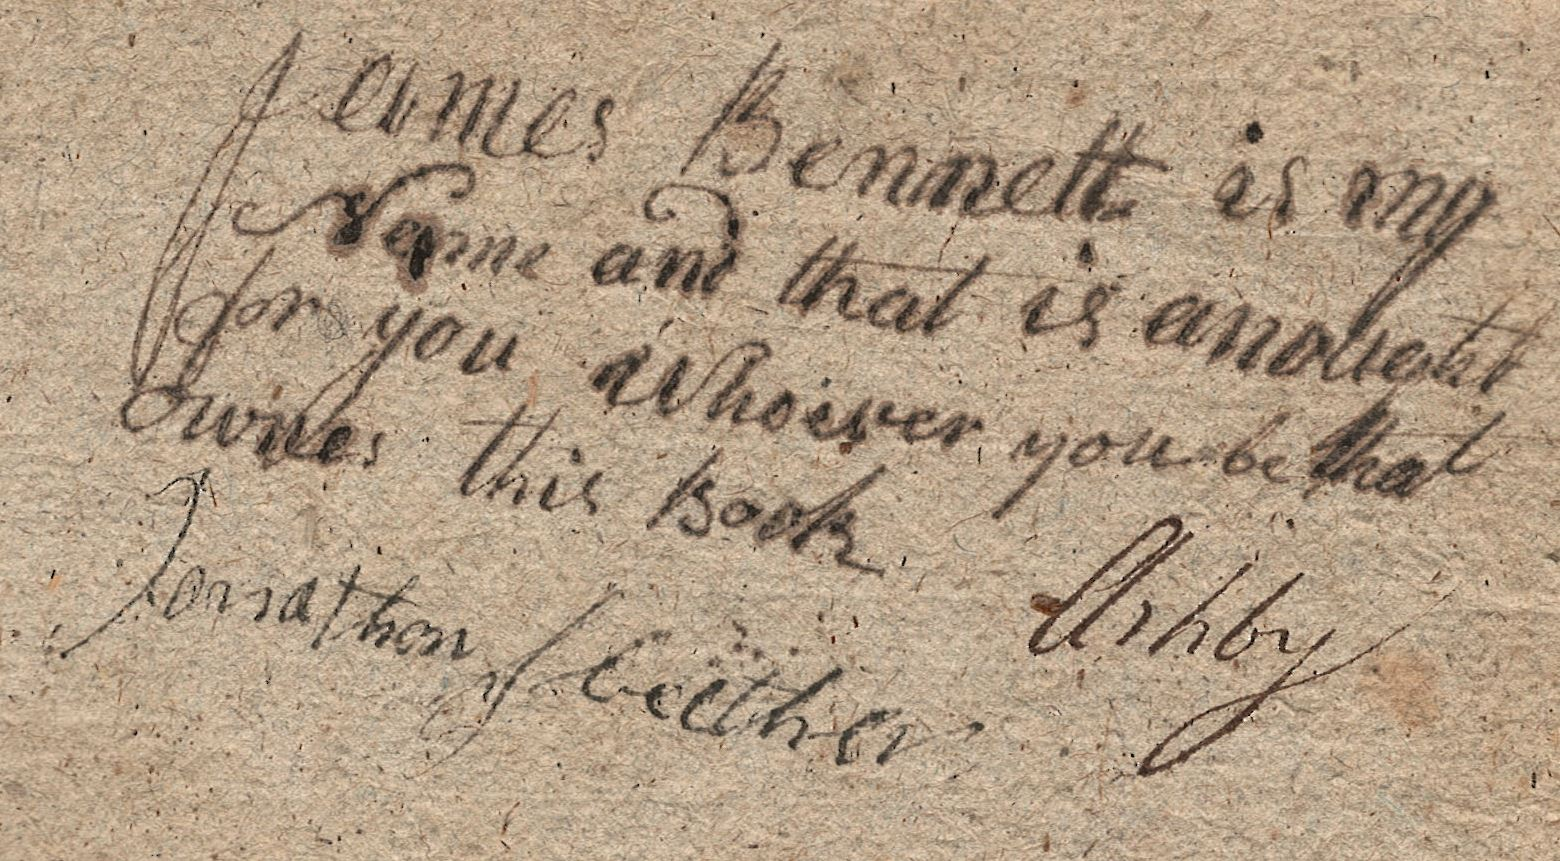 Inscription on inside cover of MS0176